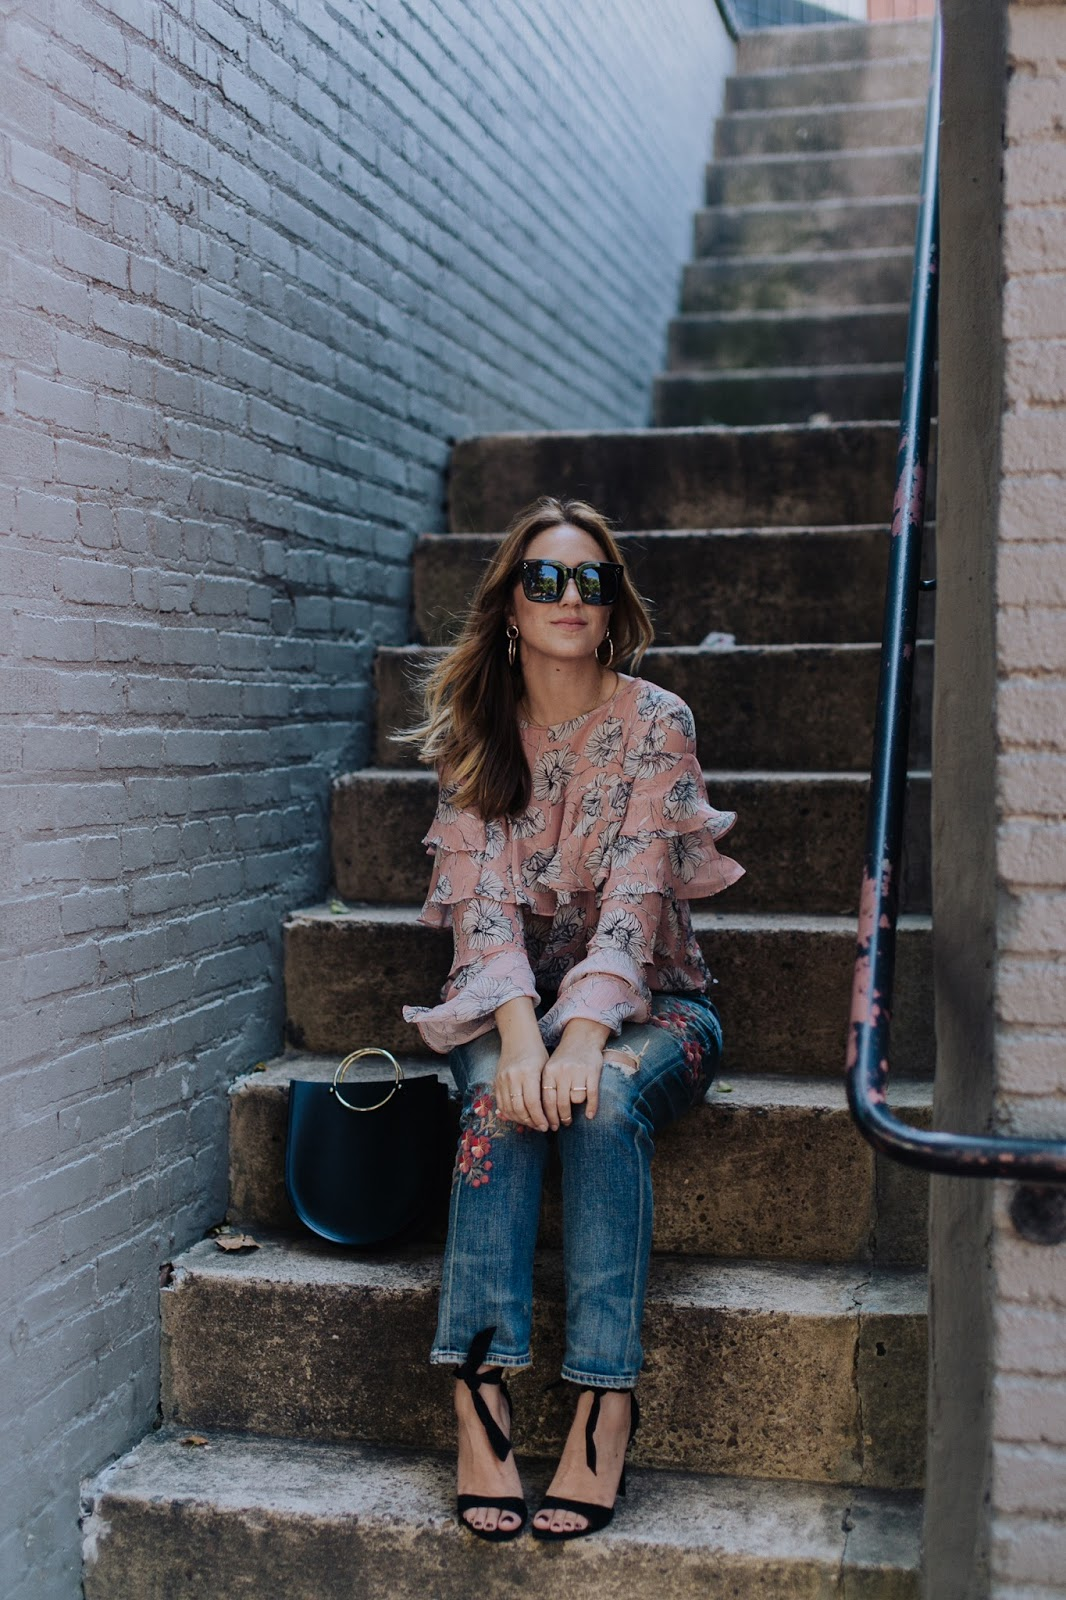 decorated denim, denim styles, denim trends, embroidered denim, patchwork denim, south moon under, denim, blogger, style, outfit, inspiration, citizens of humanity, a gold e, jeans, floral, future glory bag